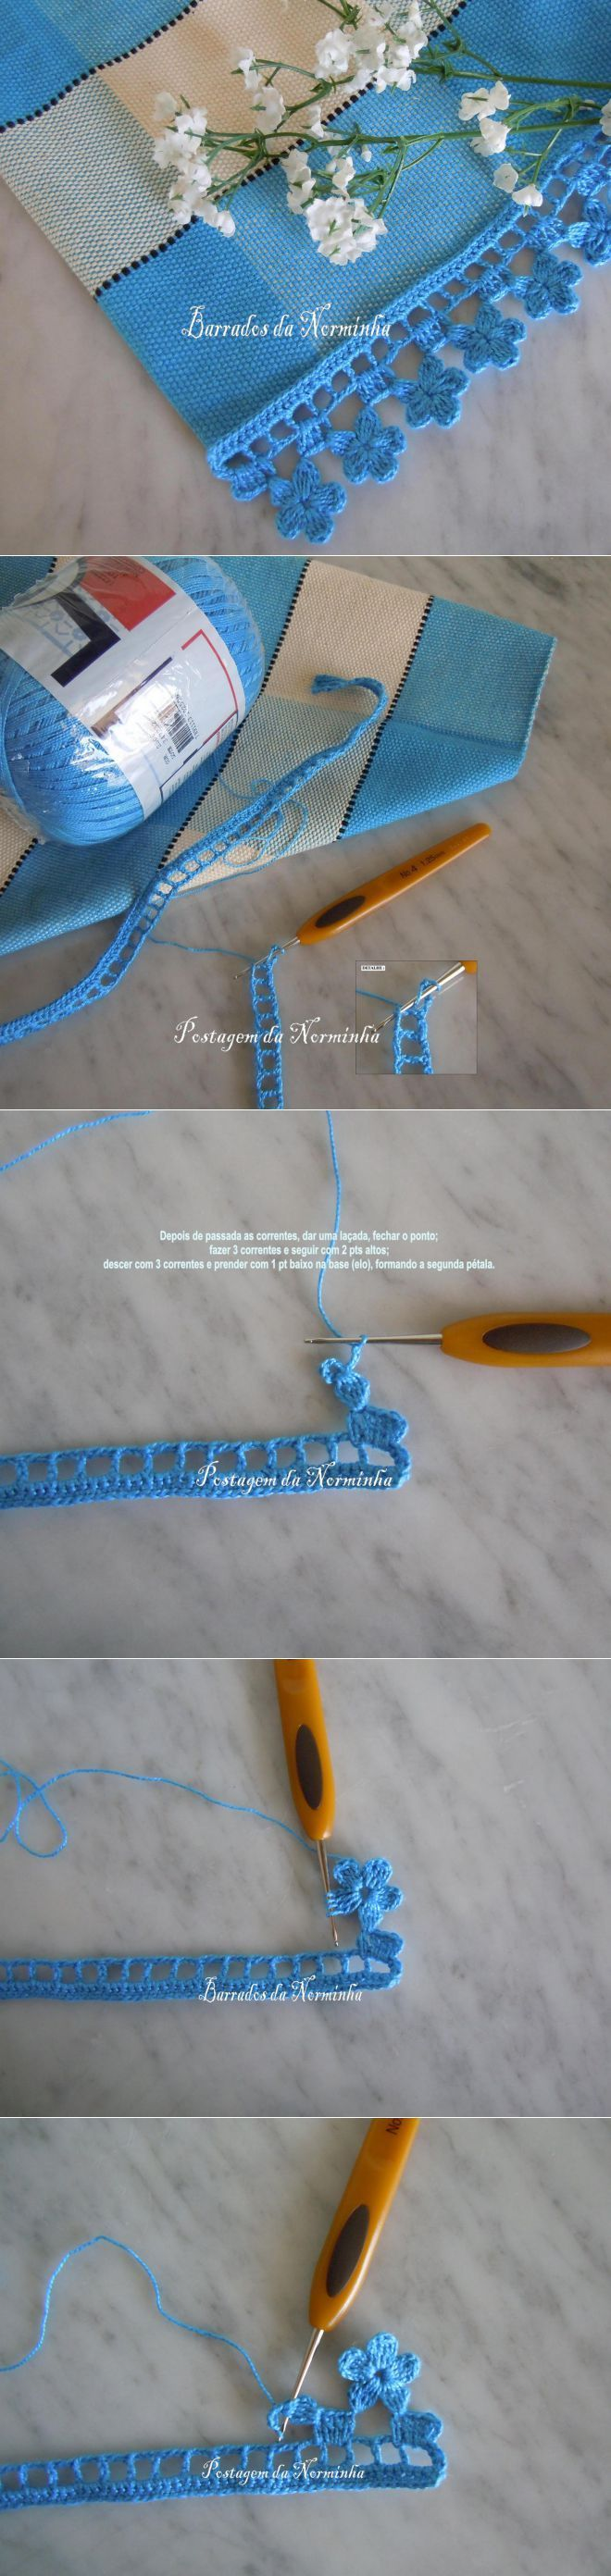 "gancho de fronteira para a classe mestre. [   ""Border hook to the master class."",   ""love this edging"",   ""Find and save knitting and crochet schemas, simple recipes, and other ideas collected with love."" ] #<br/> # #Crochet #Edging #Patterns,<br/> # #Crochet #Borders,<br/> # #Crochet #Edgings,<br/> # #Stitch #Patterns,<br/> # #Crochet #Flower,<br/> # #Fronteira,<br/> # #Irish #Crochet,<br/> # #Pillow #Covers,<br/> # #Pictures #Of<br/>"